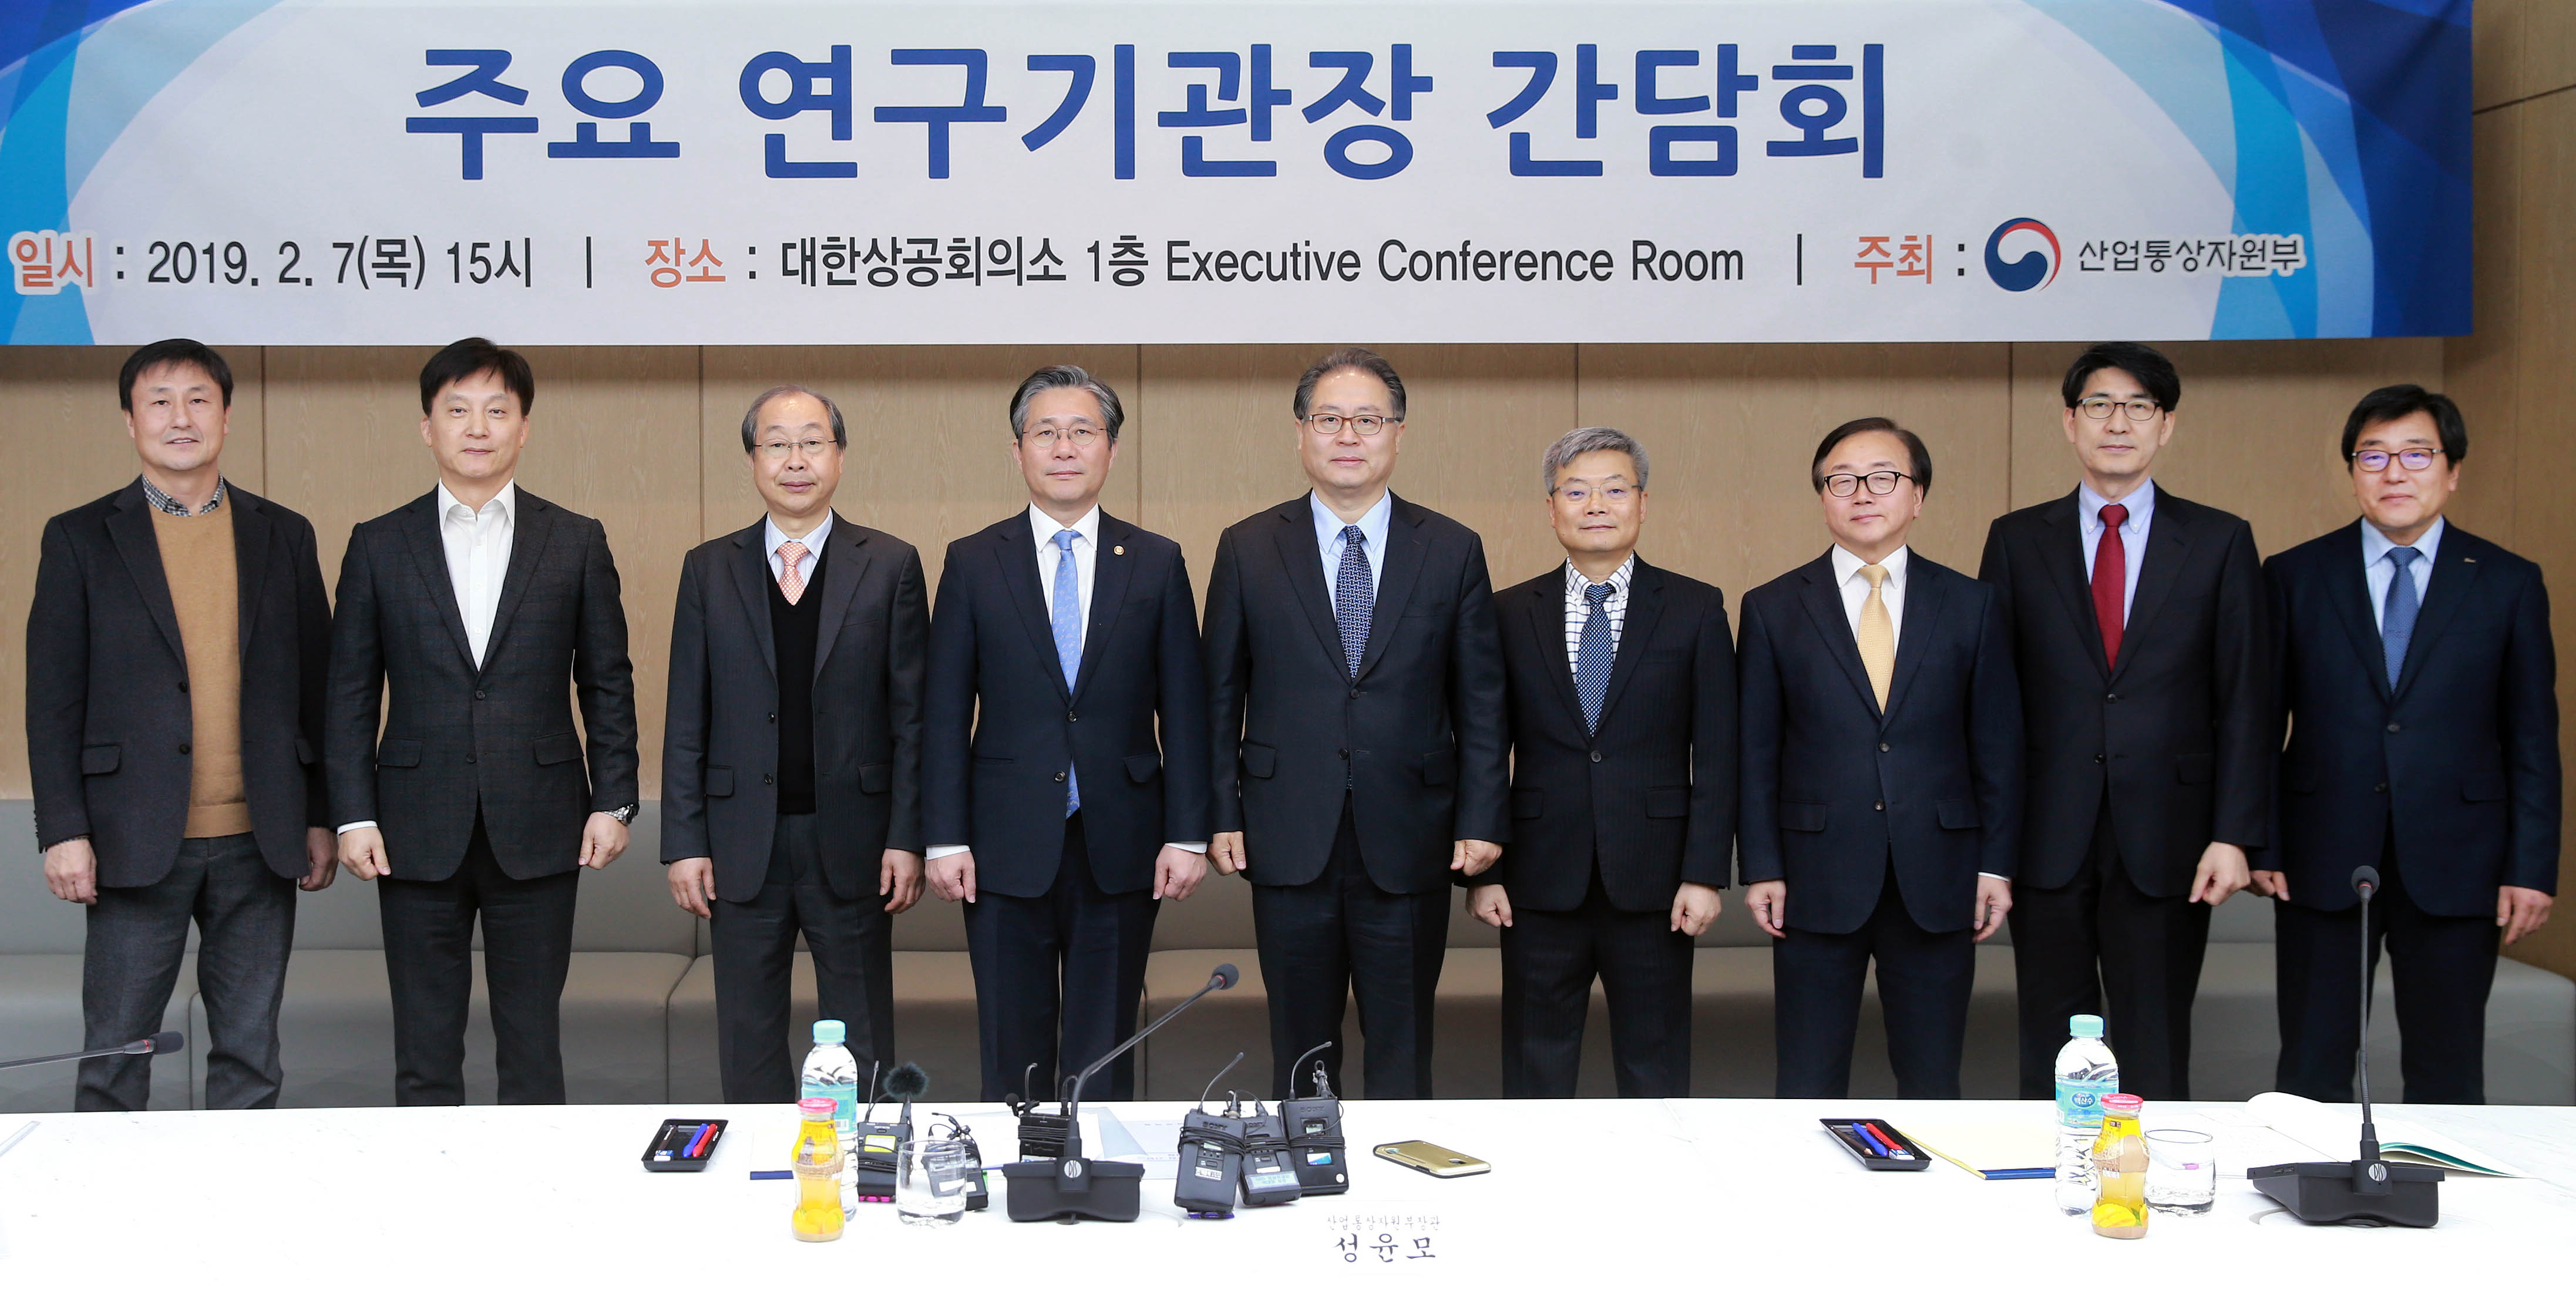 Minister Sung discusses industrial revitalization and innovation with think tank leaders Image 0